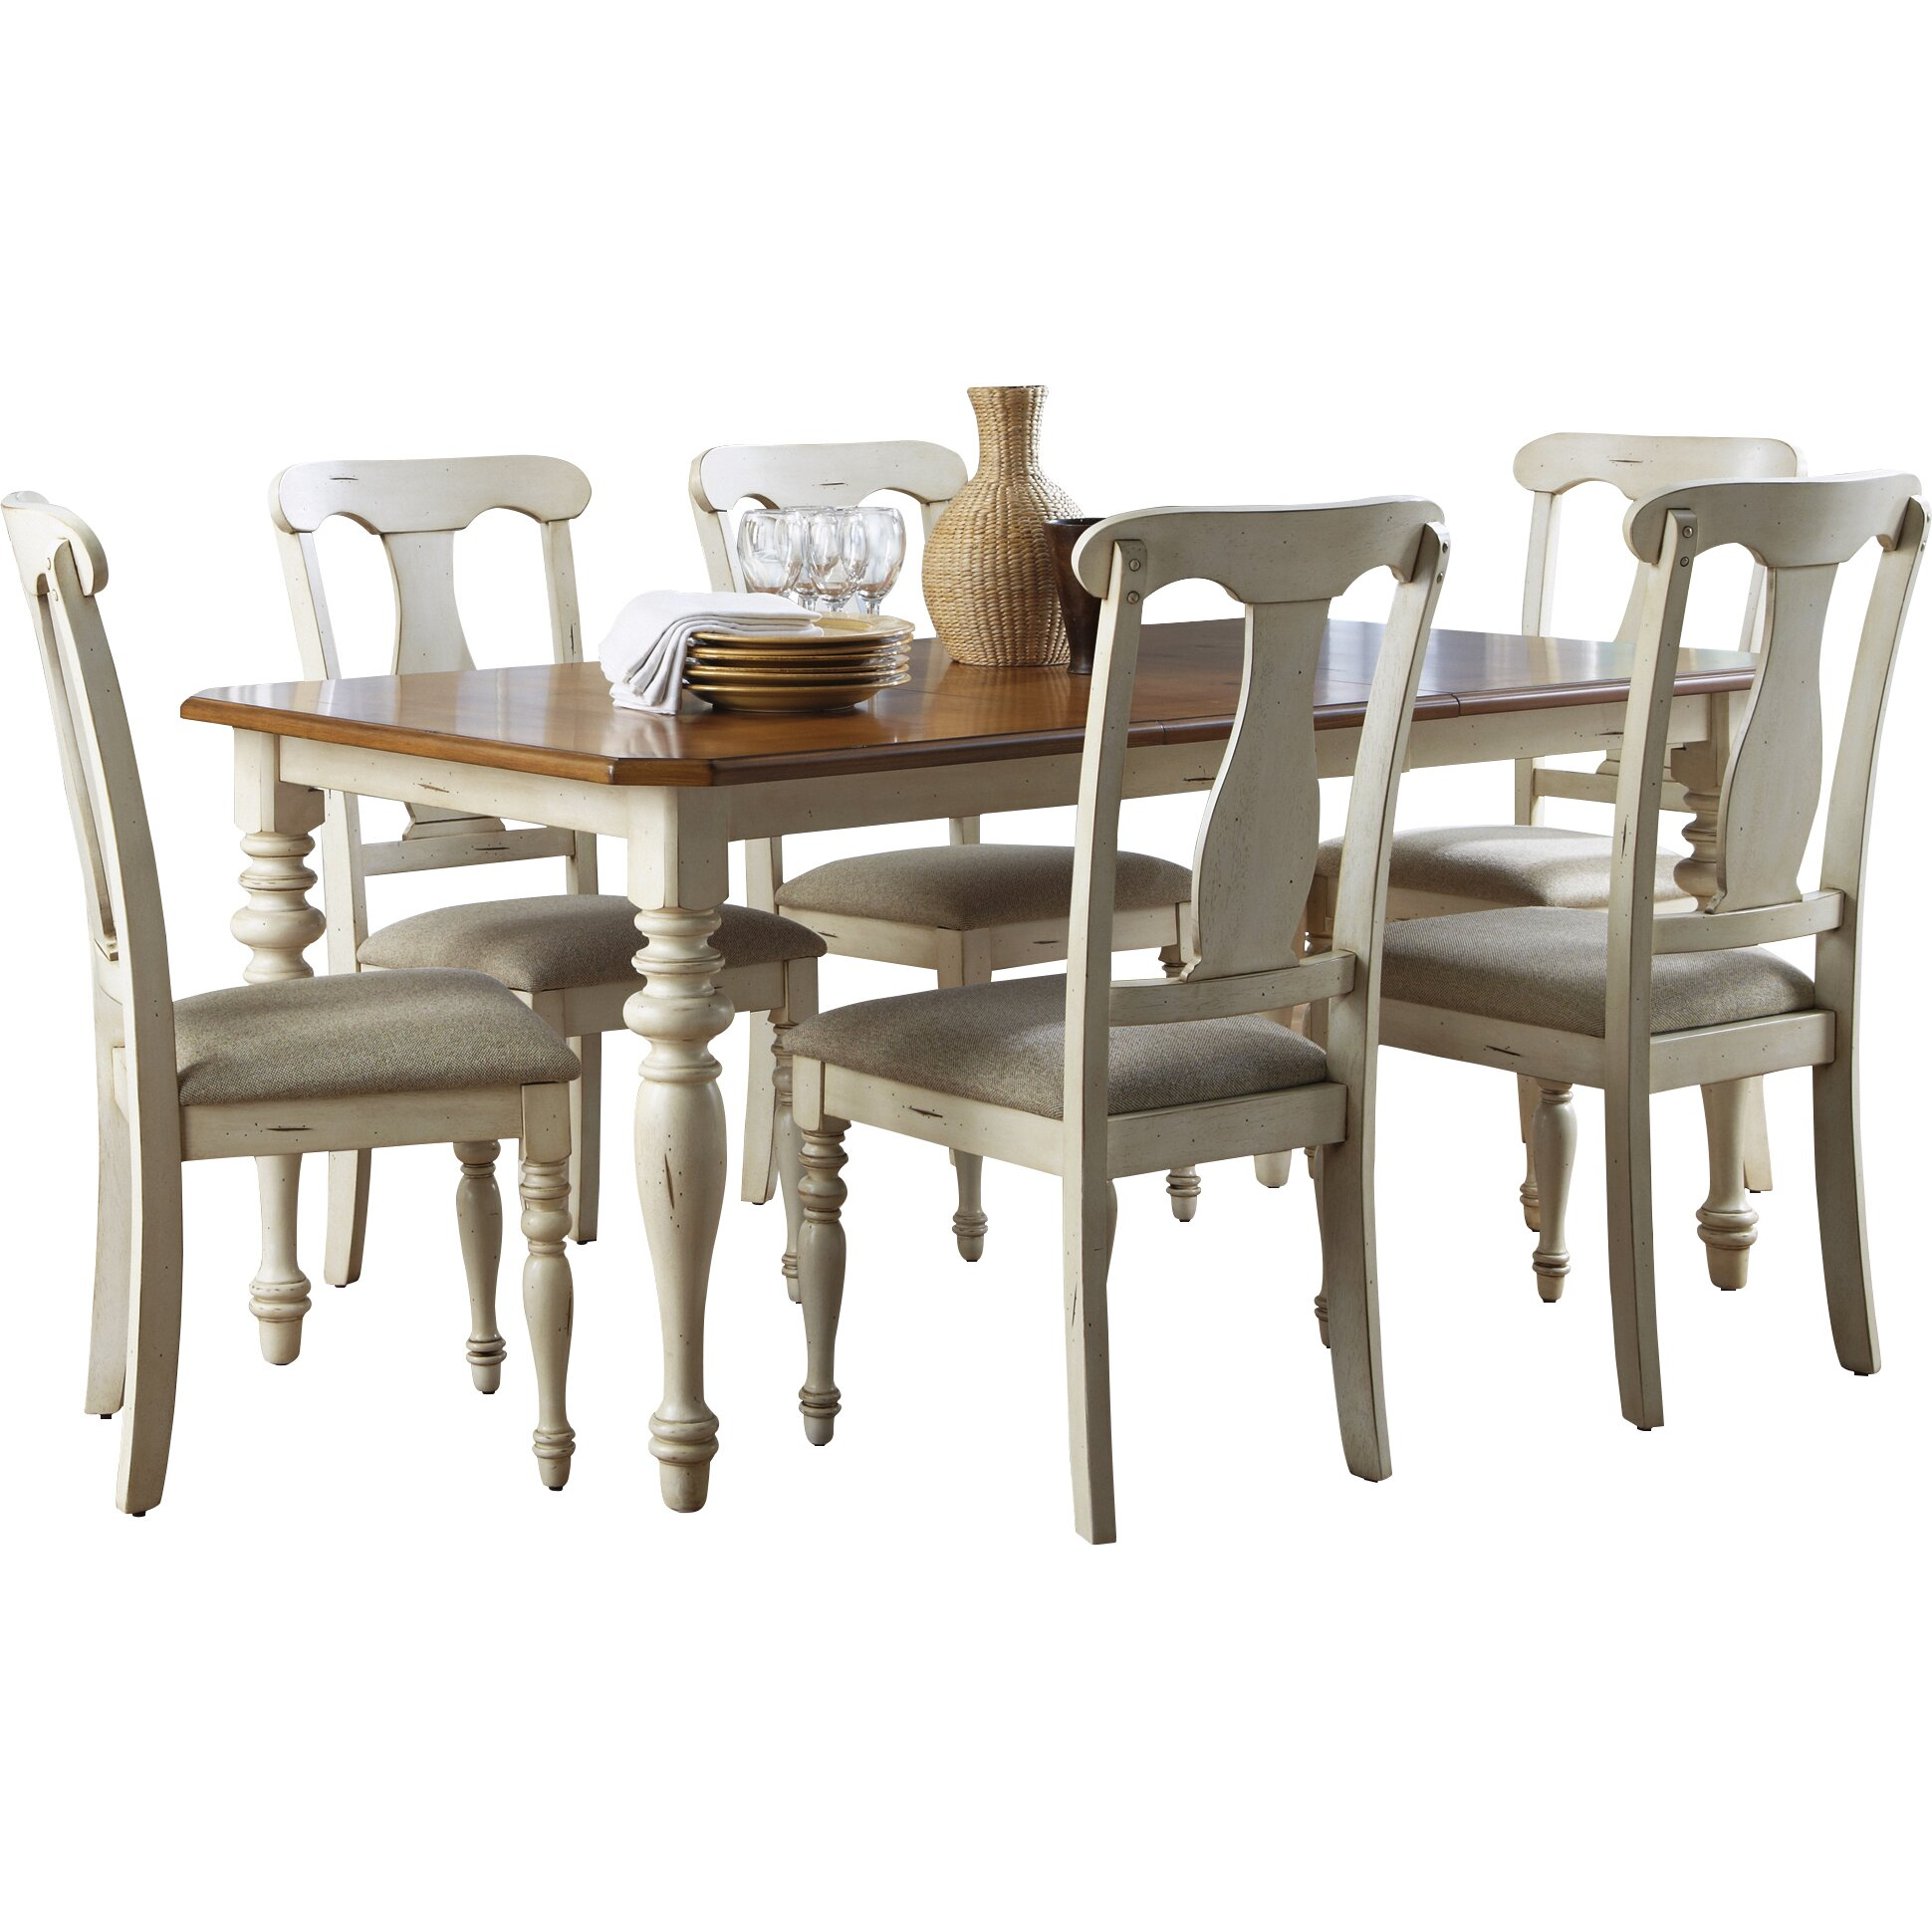 Sutera Extendable Dining Table By Bay Isle Home